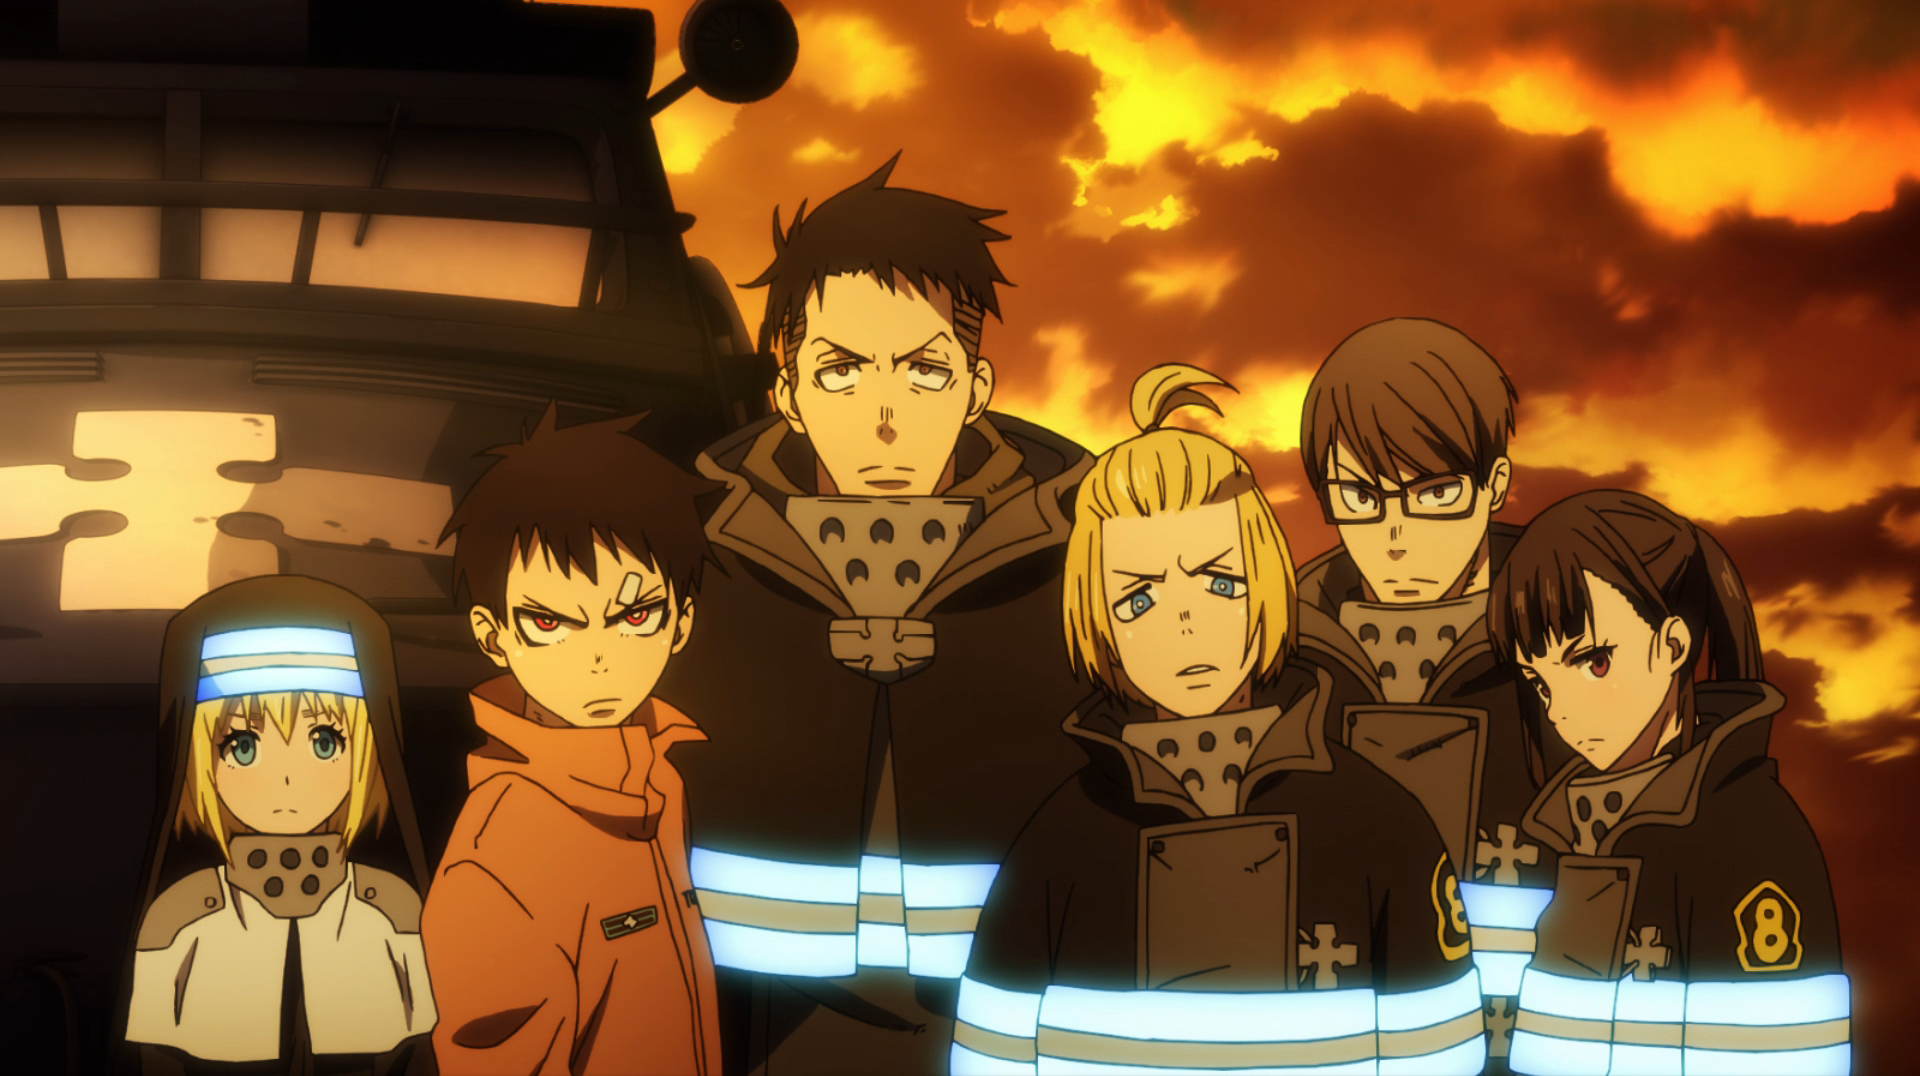 Special Fire Force Company 8